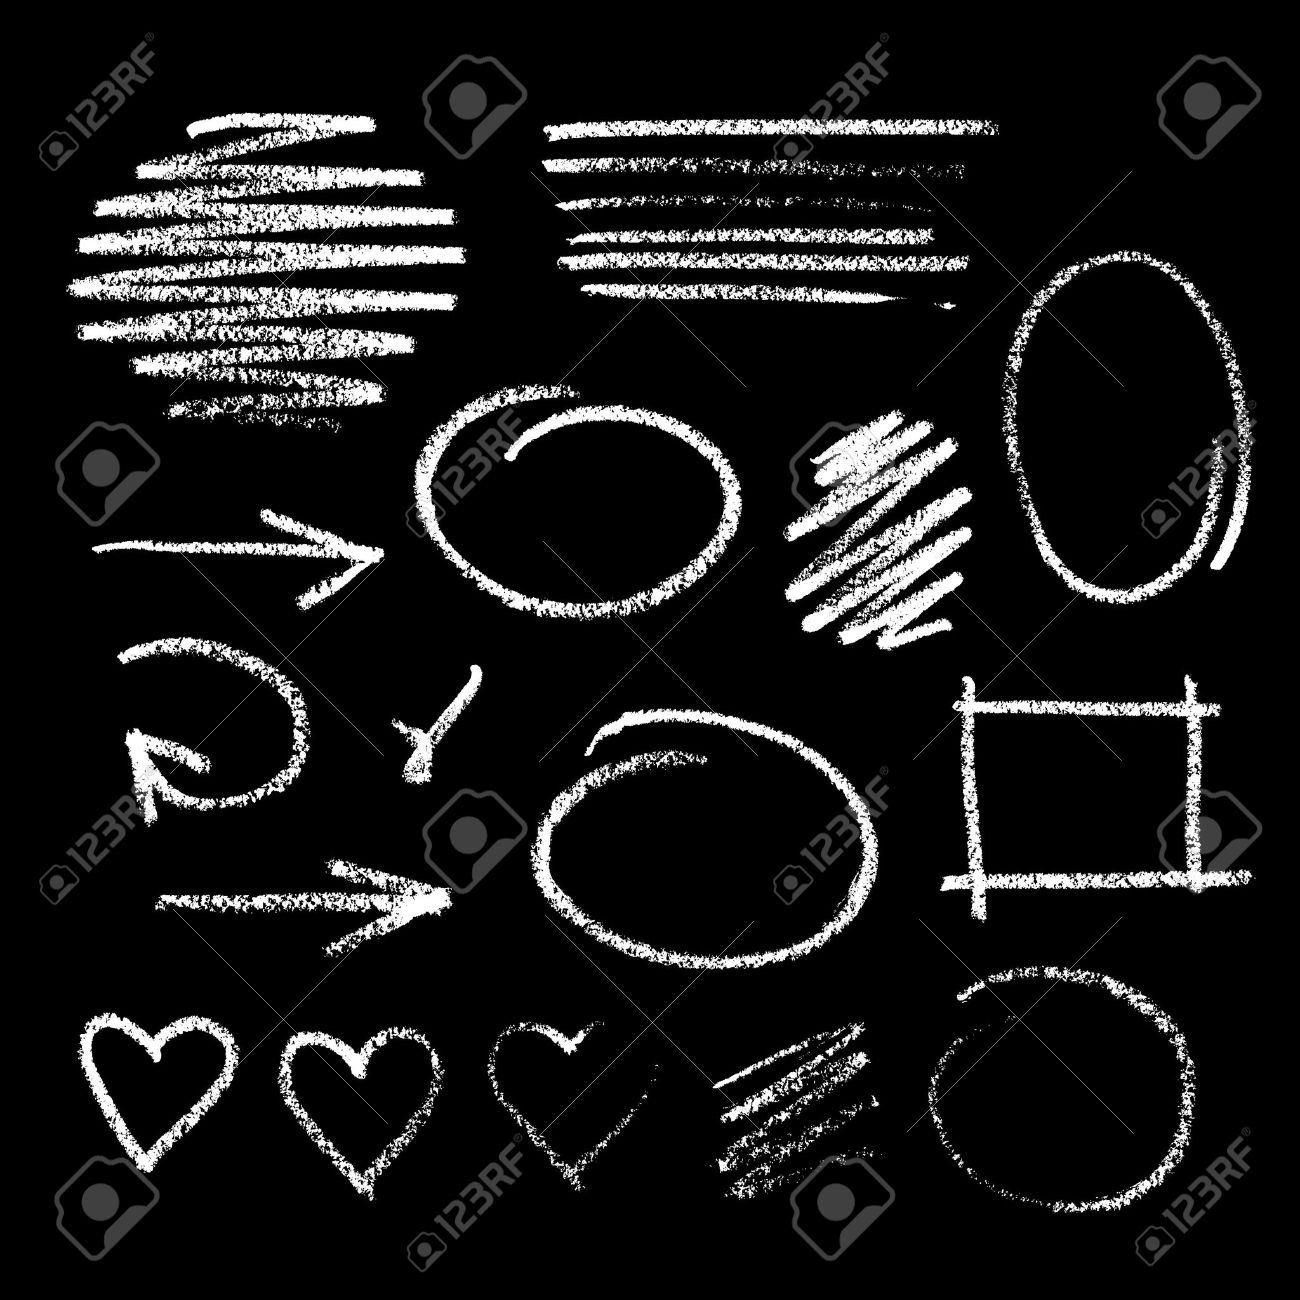 Collection of graphic elements. Handdrawn chalk sketch on a blackboard. Arrows, frames, strokes and hearts - 43026055